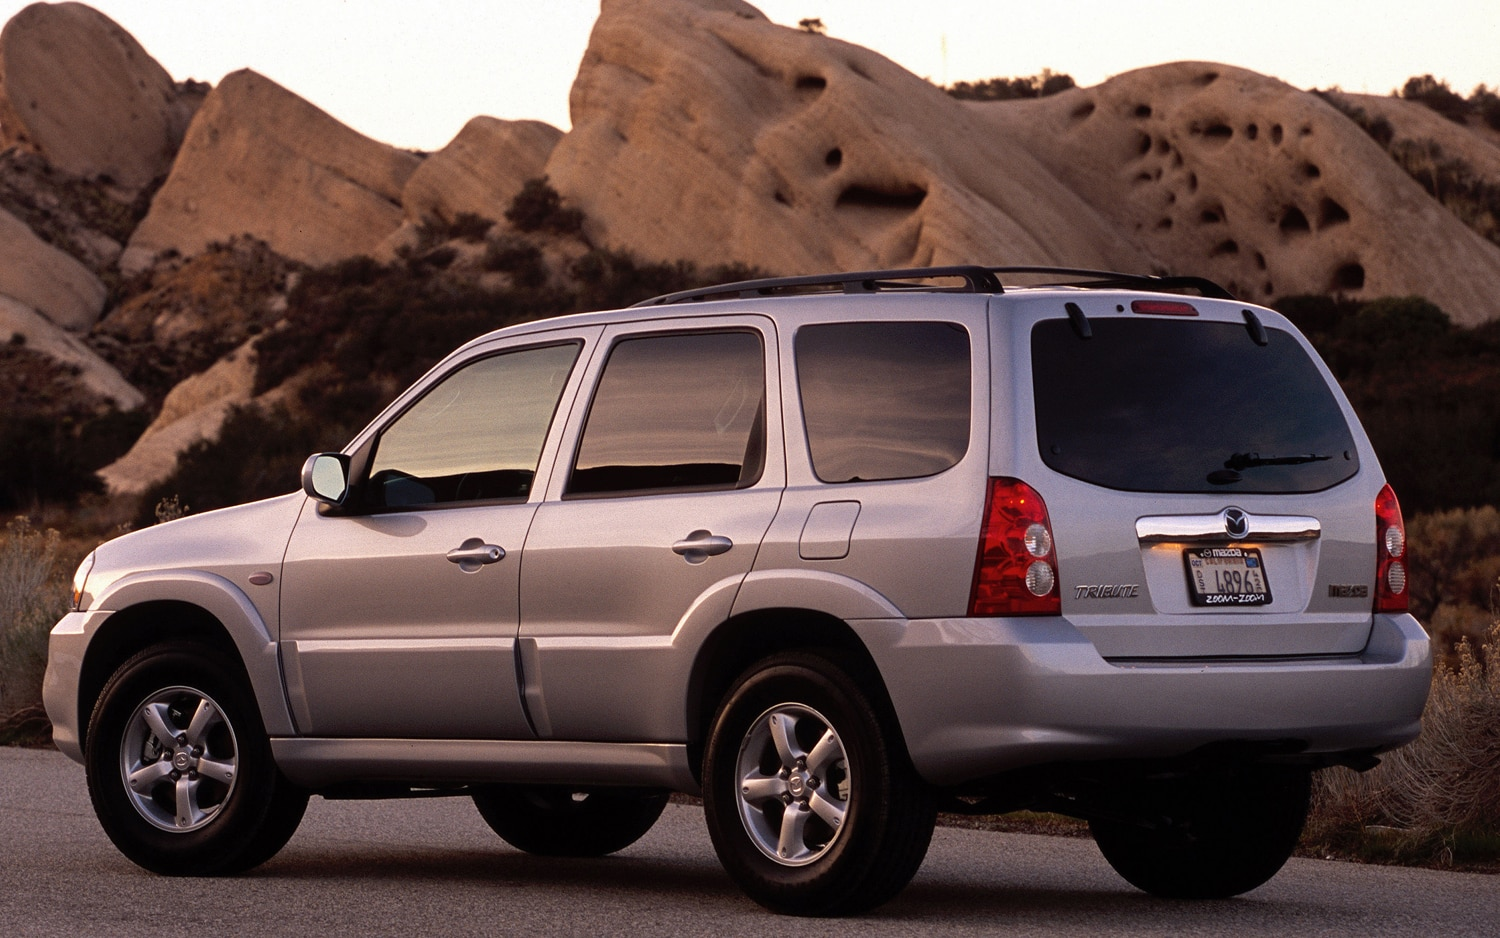 Mazda Dealers In Ohio >> Recall Central: 2001-2004 Mazda Tribute, 2013-2014 Jaguar ...